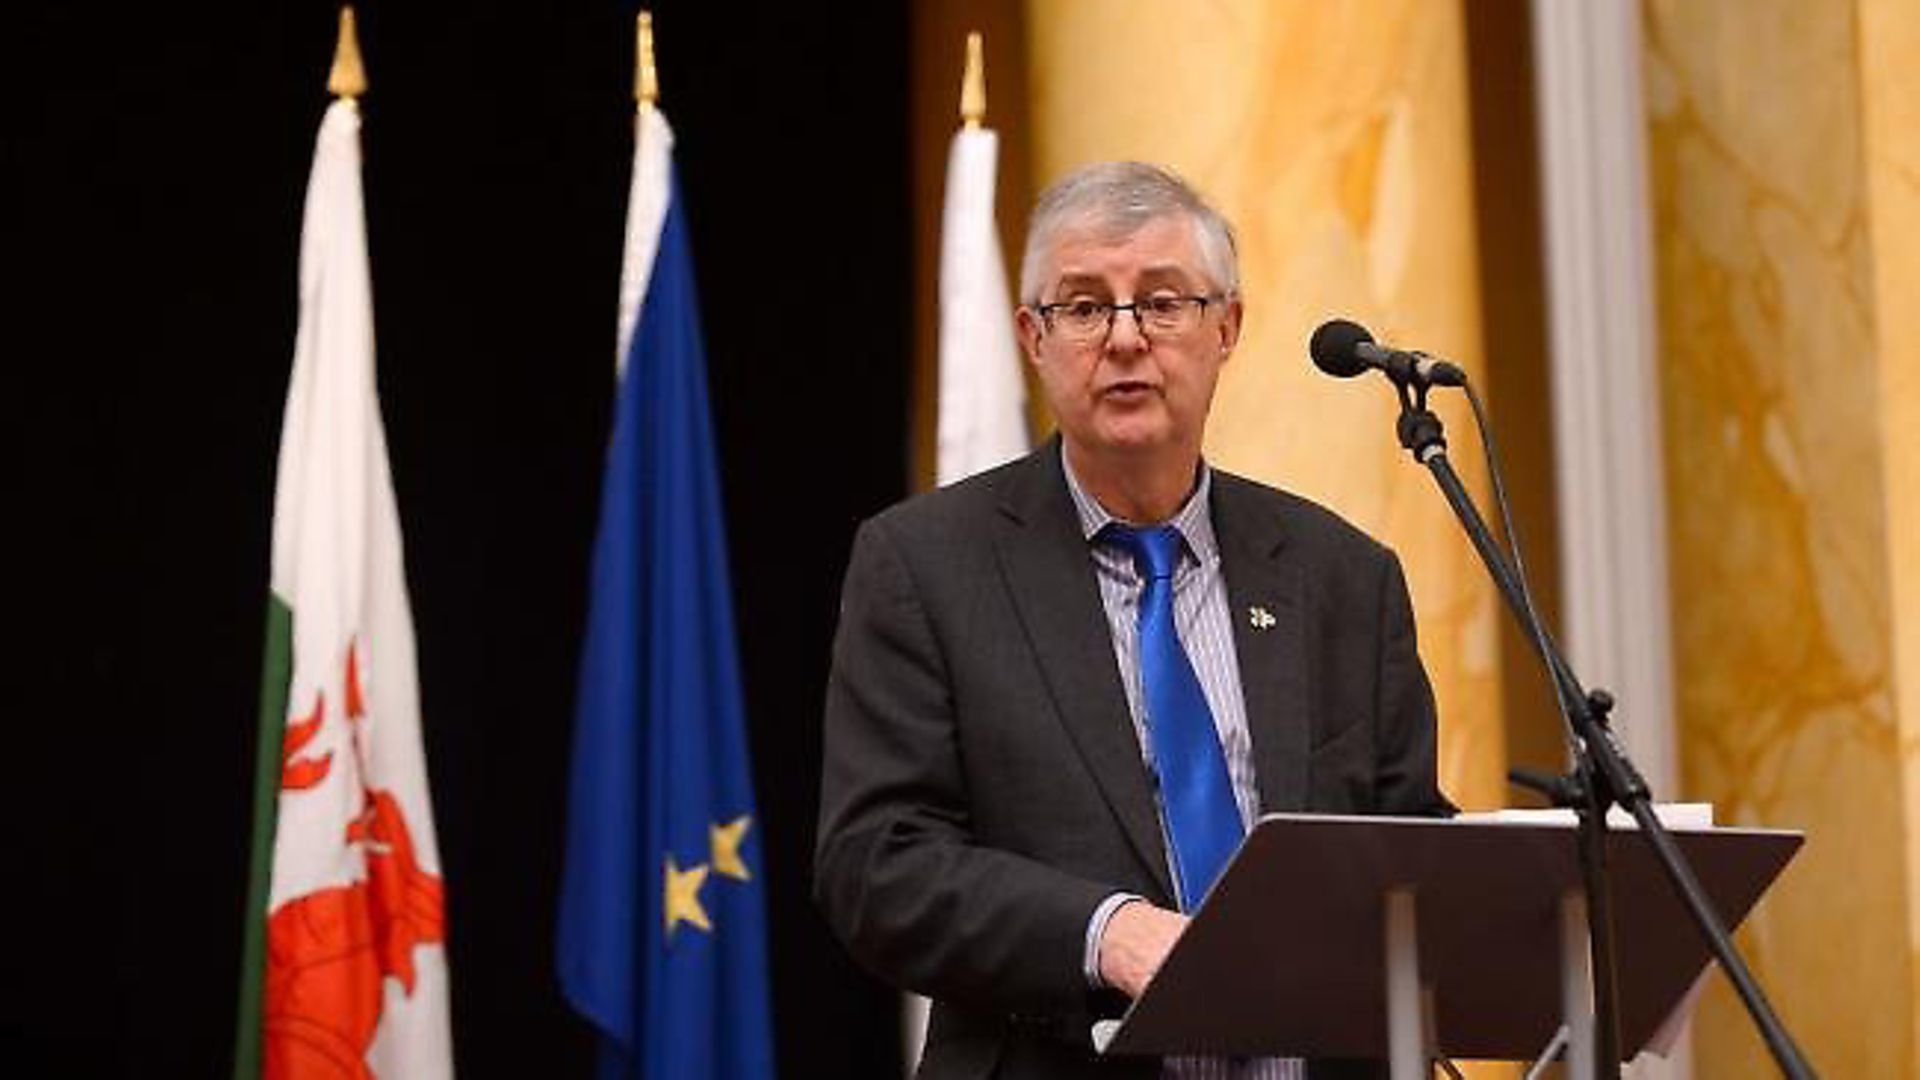 Mark Drakeford appears in front of a European flag. Photograph: CPMR/Flickr. - Credit: Archant